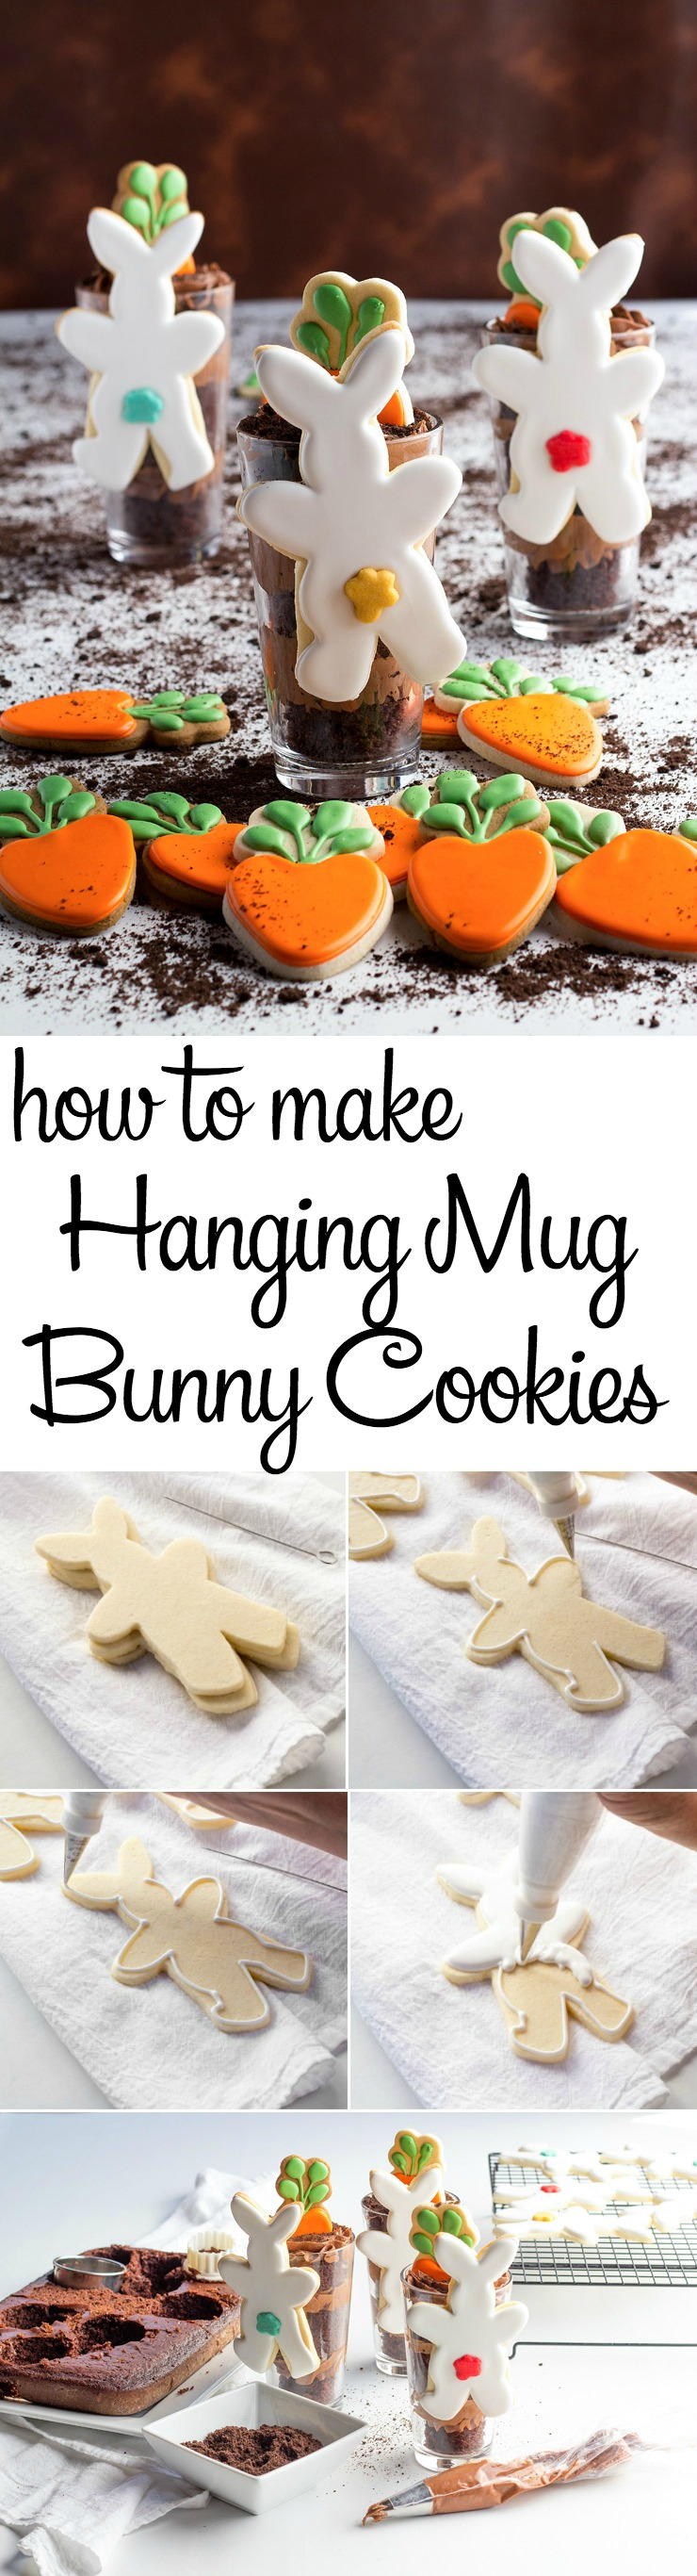 How to Make Simple Hanging Mug Bunny Cookies with a How to Video | The Bearfoot Baker